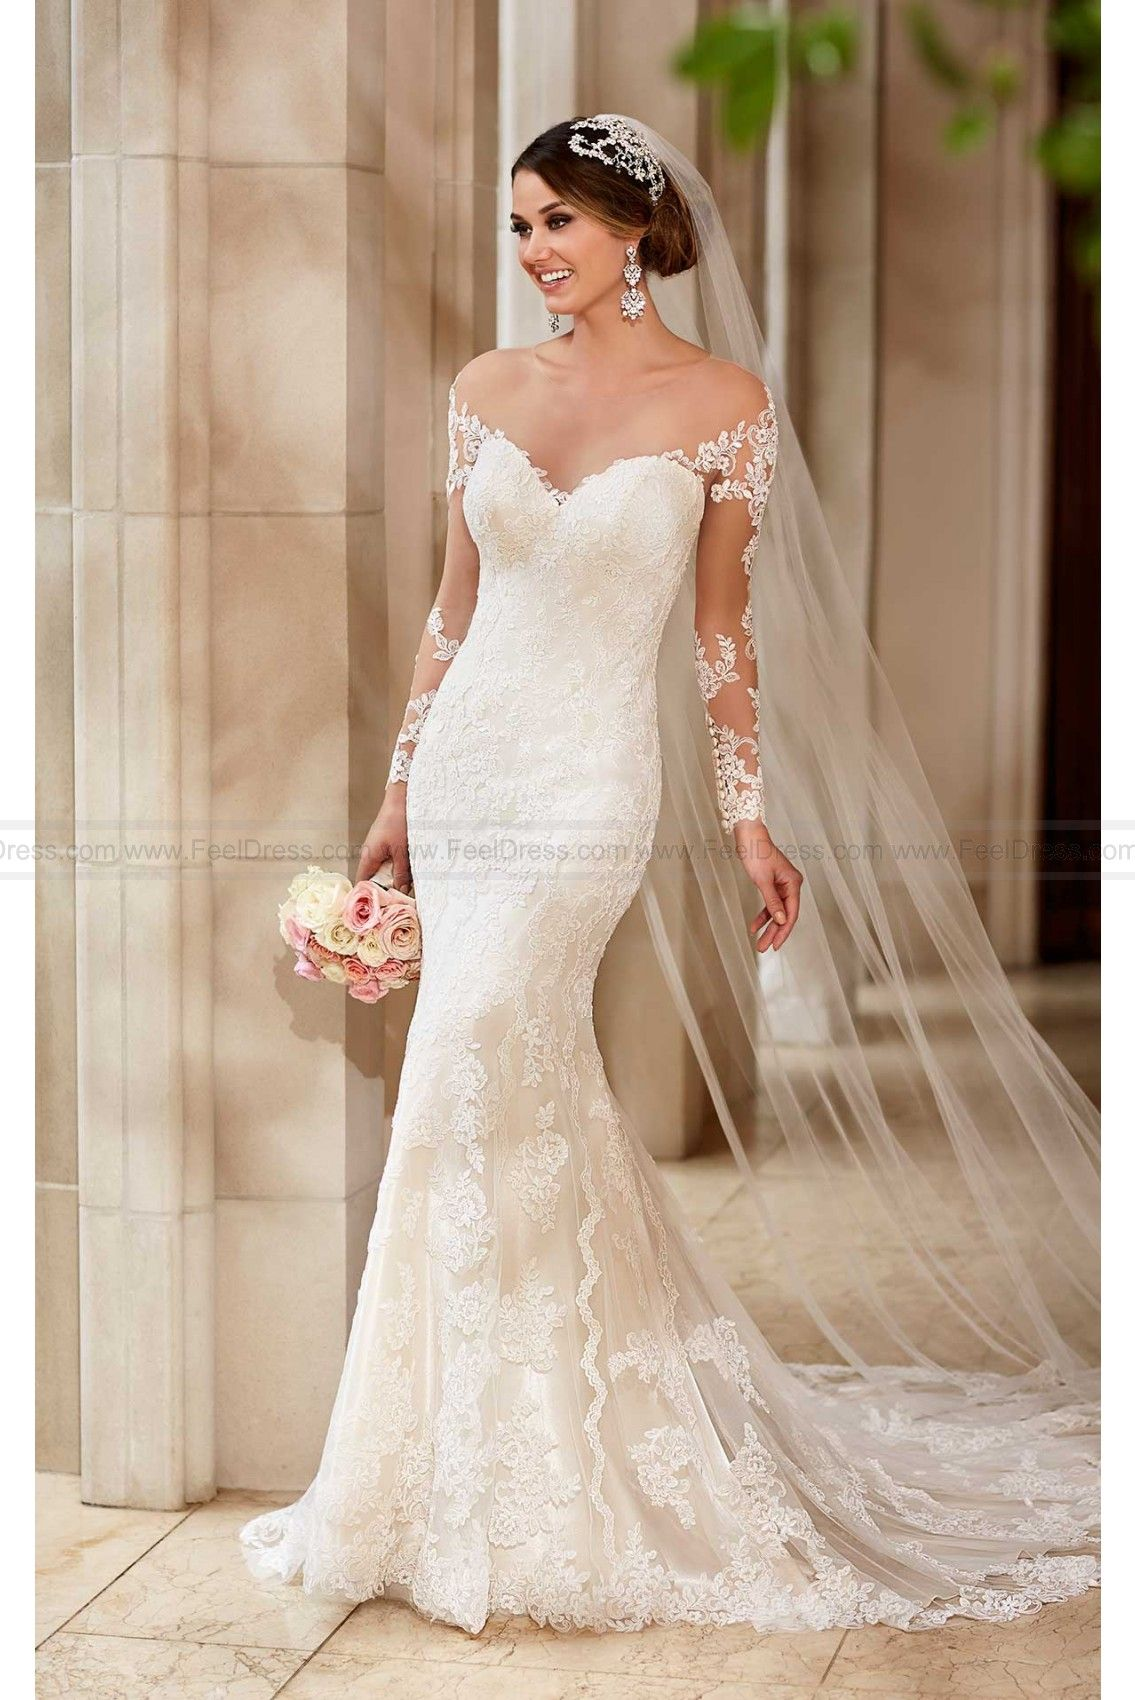 Stella york wedding dress with illusion lace sleeves wedding